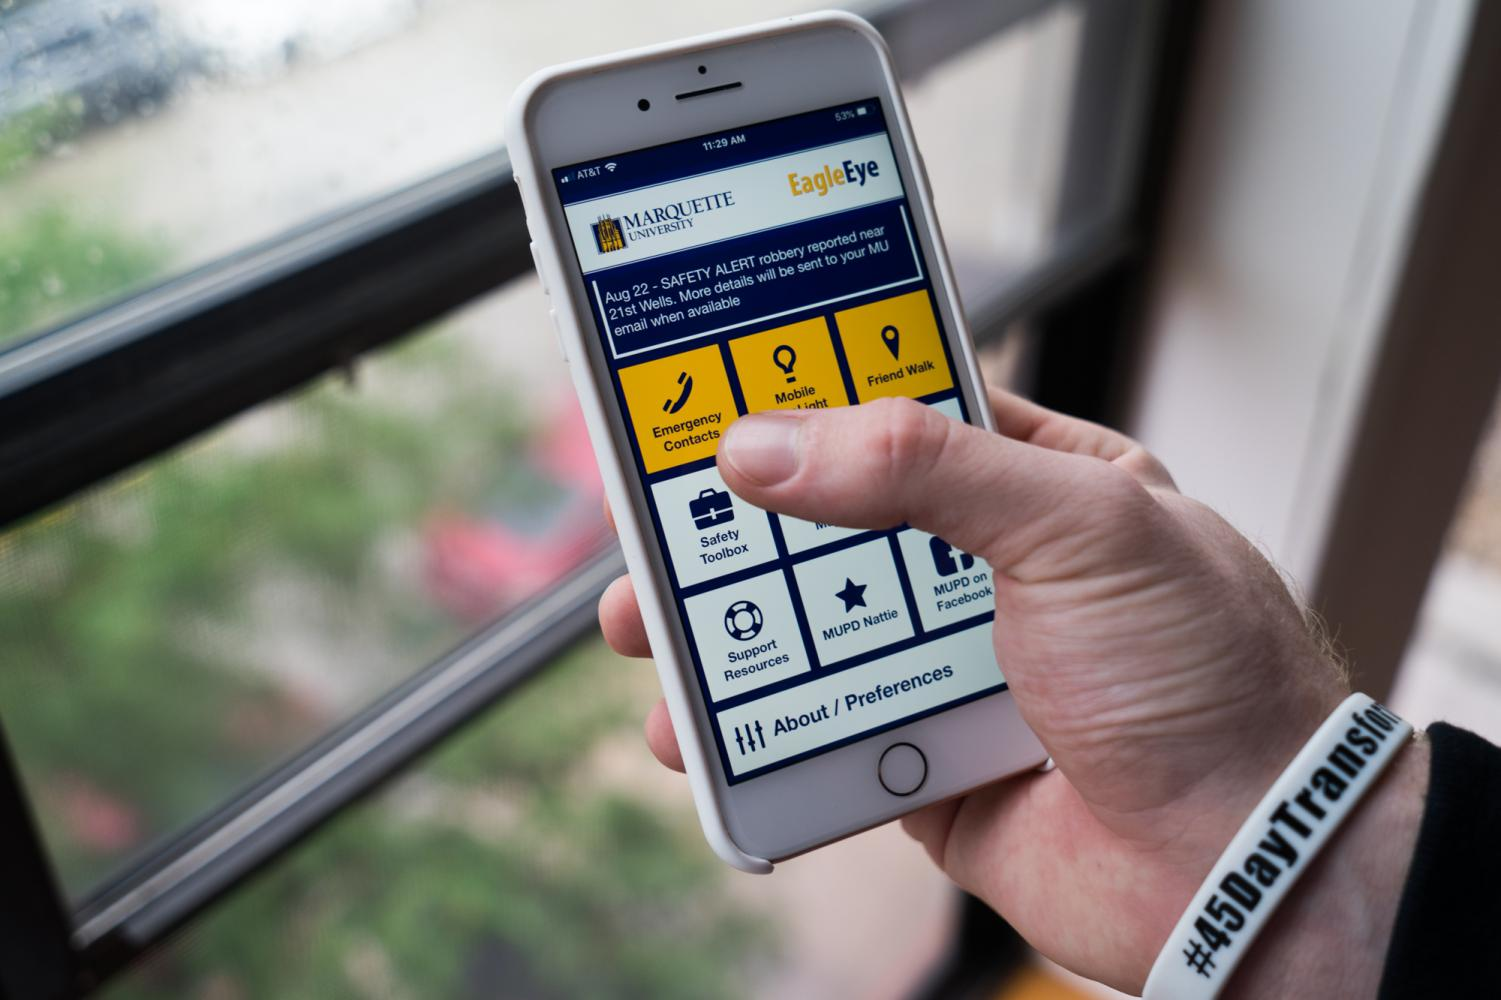 Student uses MUPD's new safety app, EagleEye.